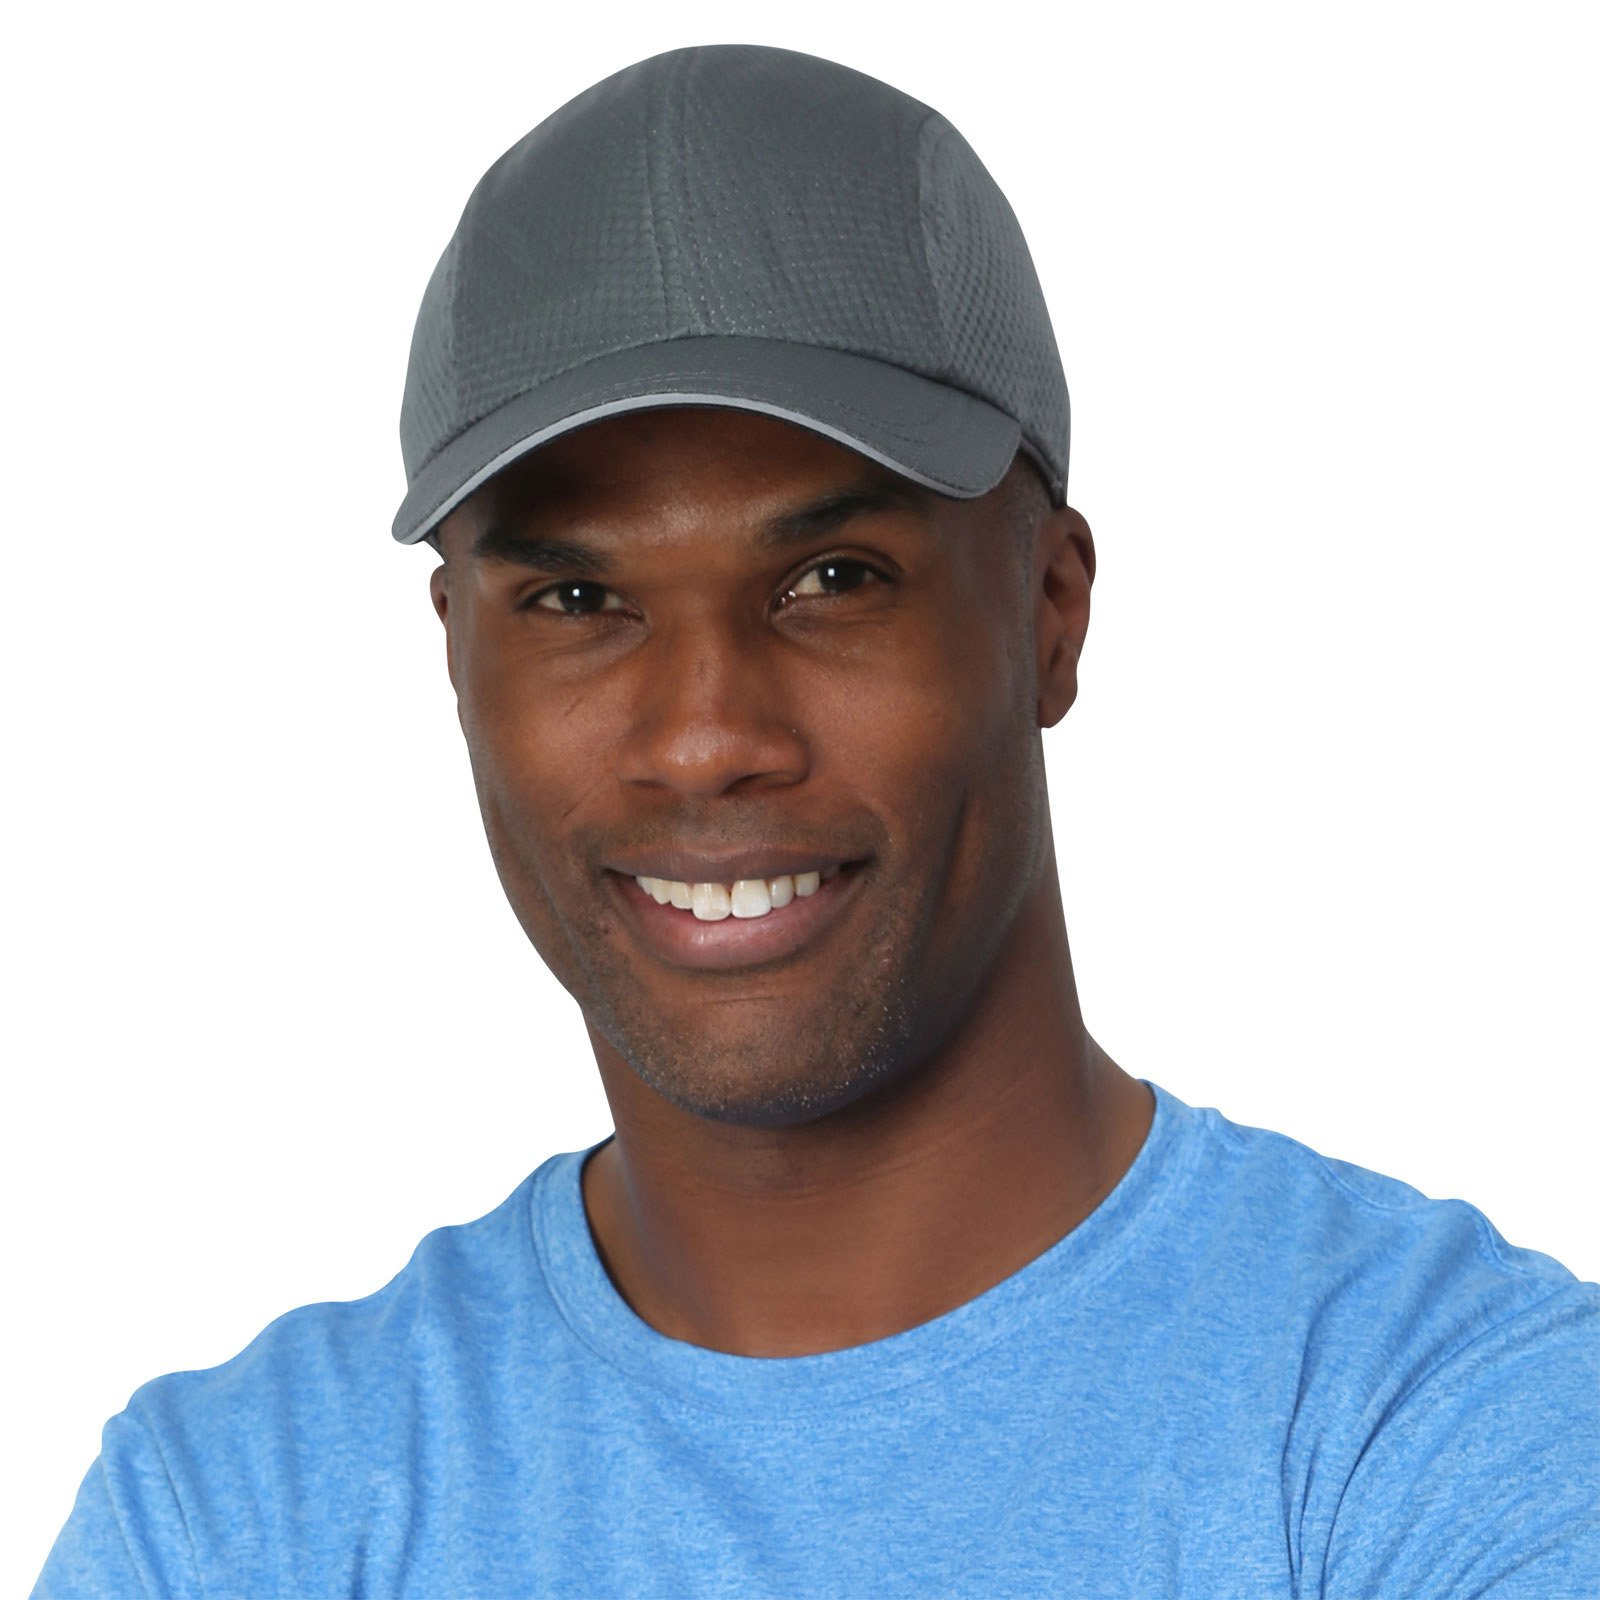 TrailHeads Race Day Performance Running Cap The lightweight, quick dry, sport cap for men – 5 Colors - charcoal